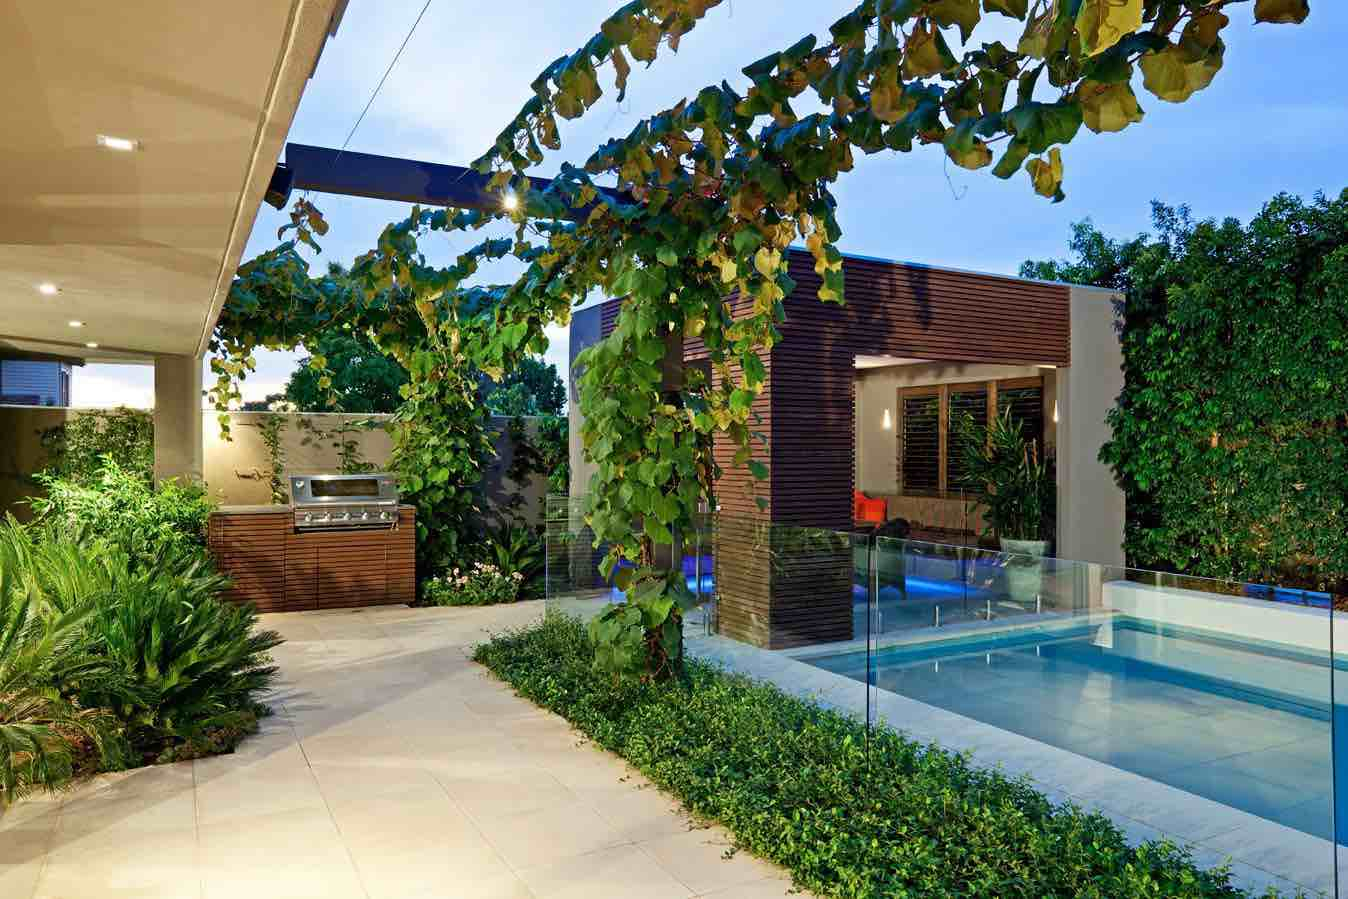 Backyard Design Ideas For Small Yards Worthminer - Small backyard ideas